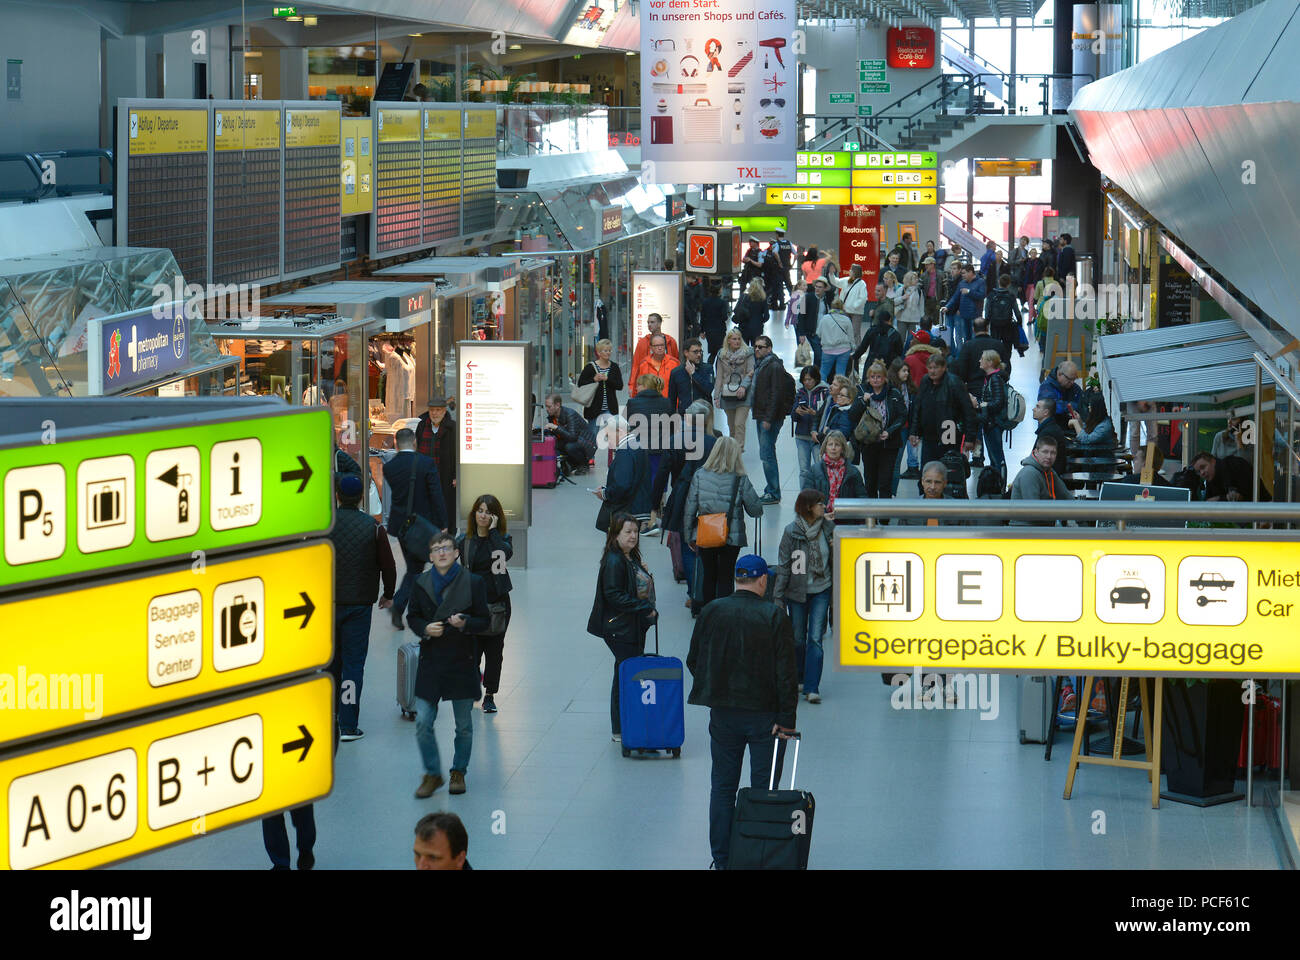 Flughafen Tegel Gate C Airport Berlin Tegel Terminal Stock Photos Airport Berlin Tegel